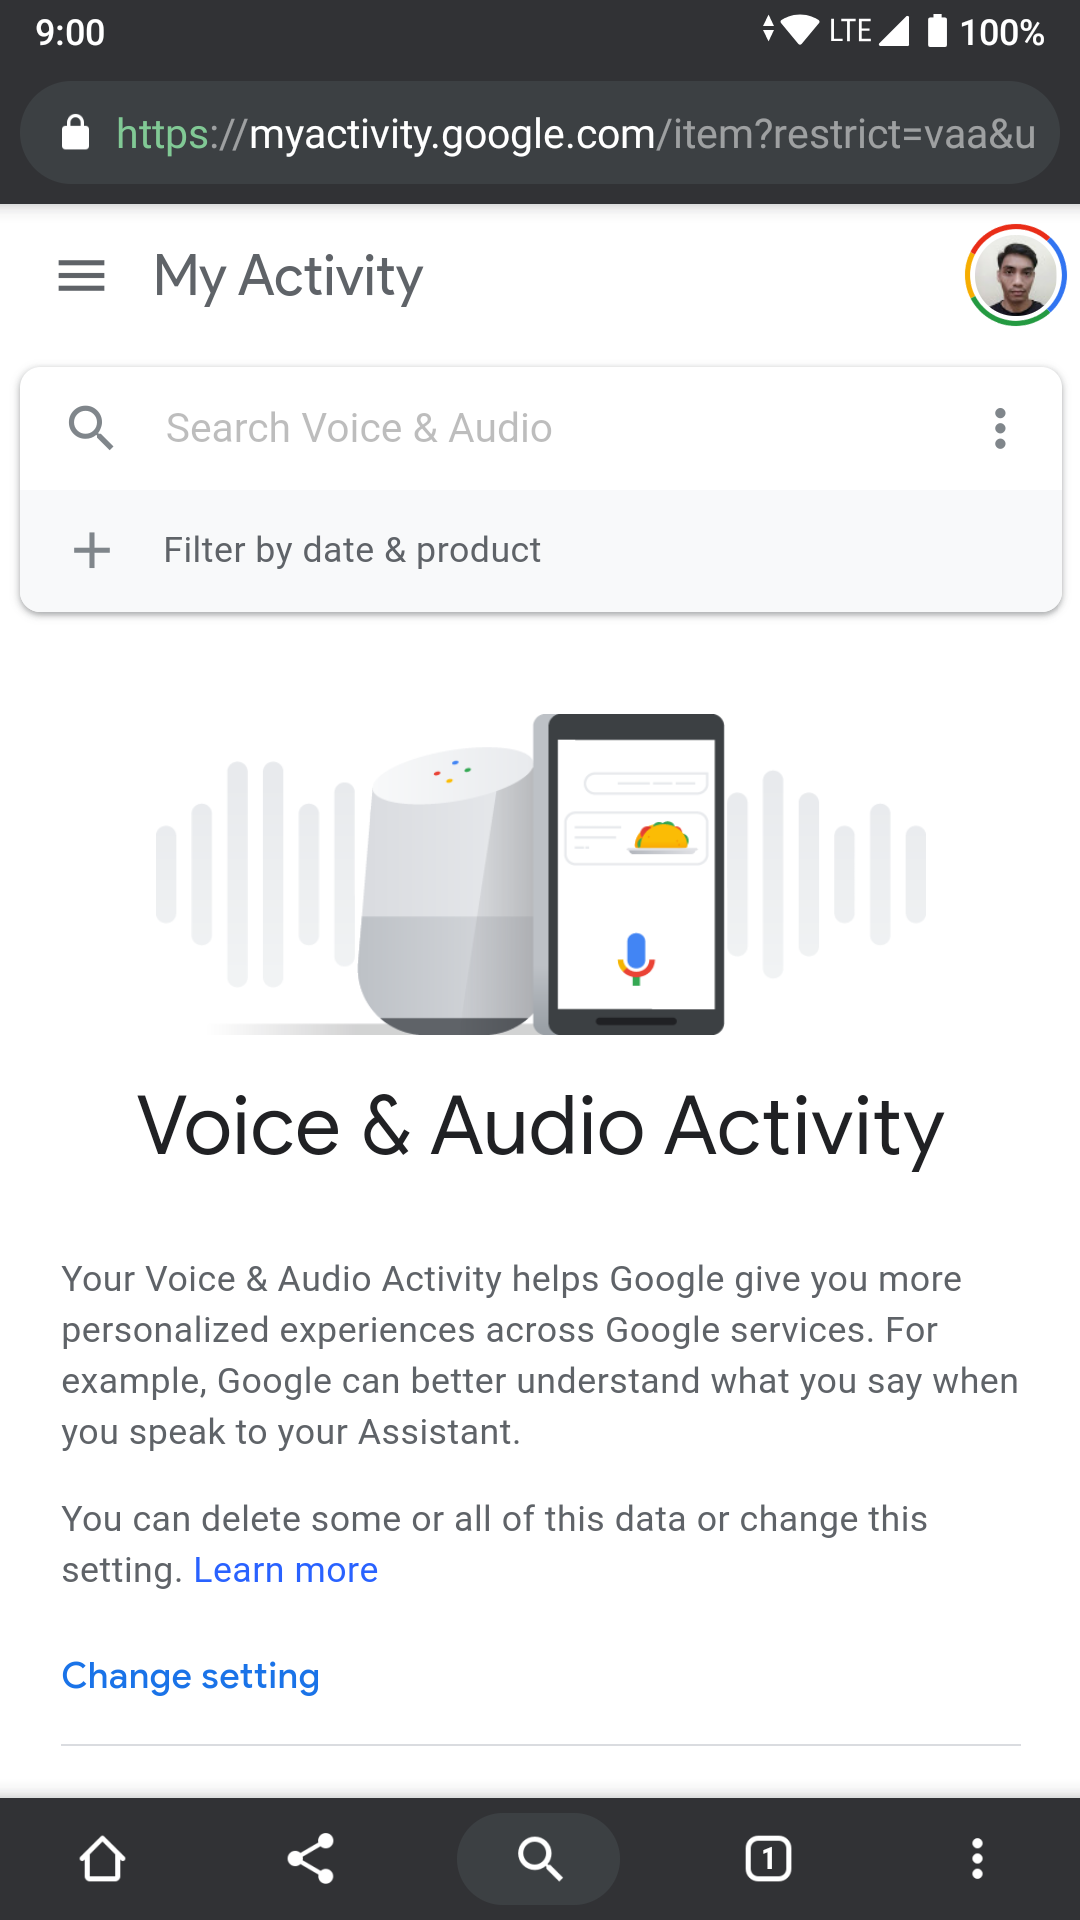 Google Voice and Audio Activity